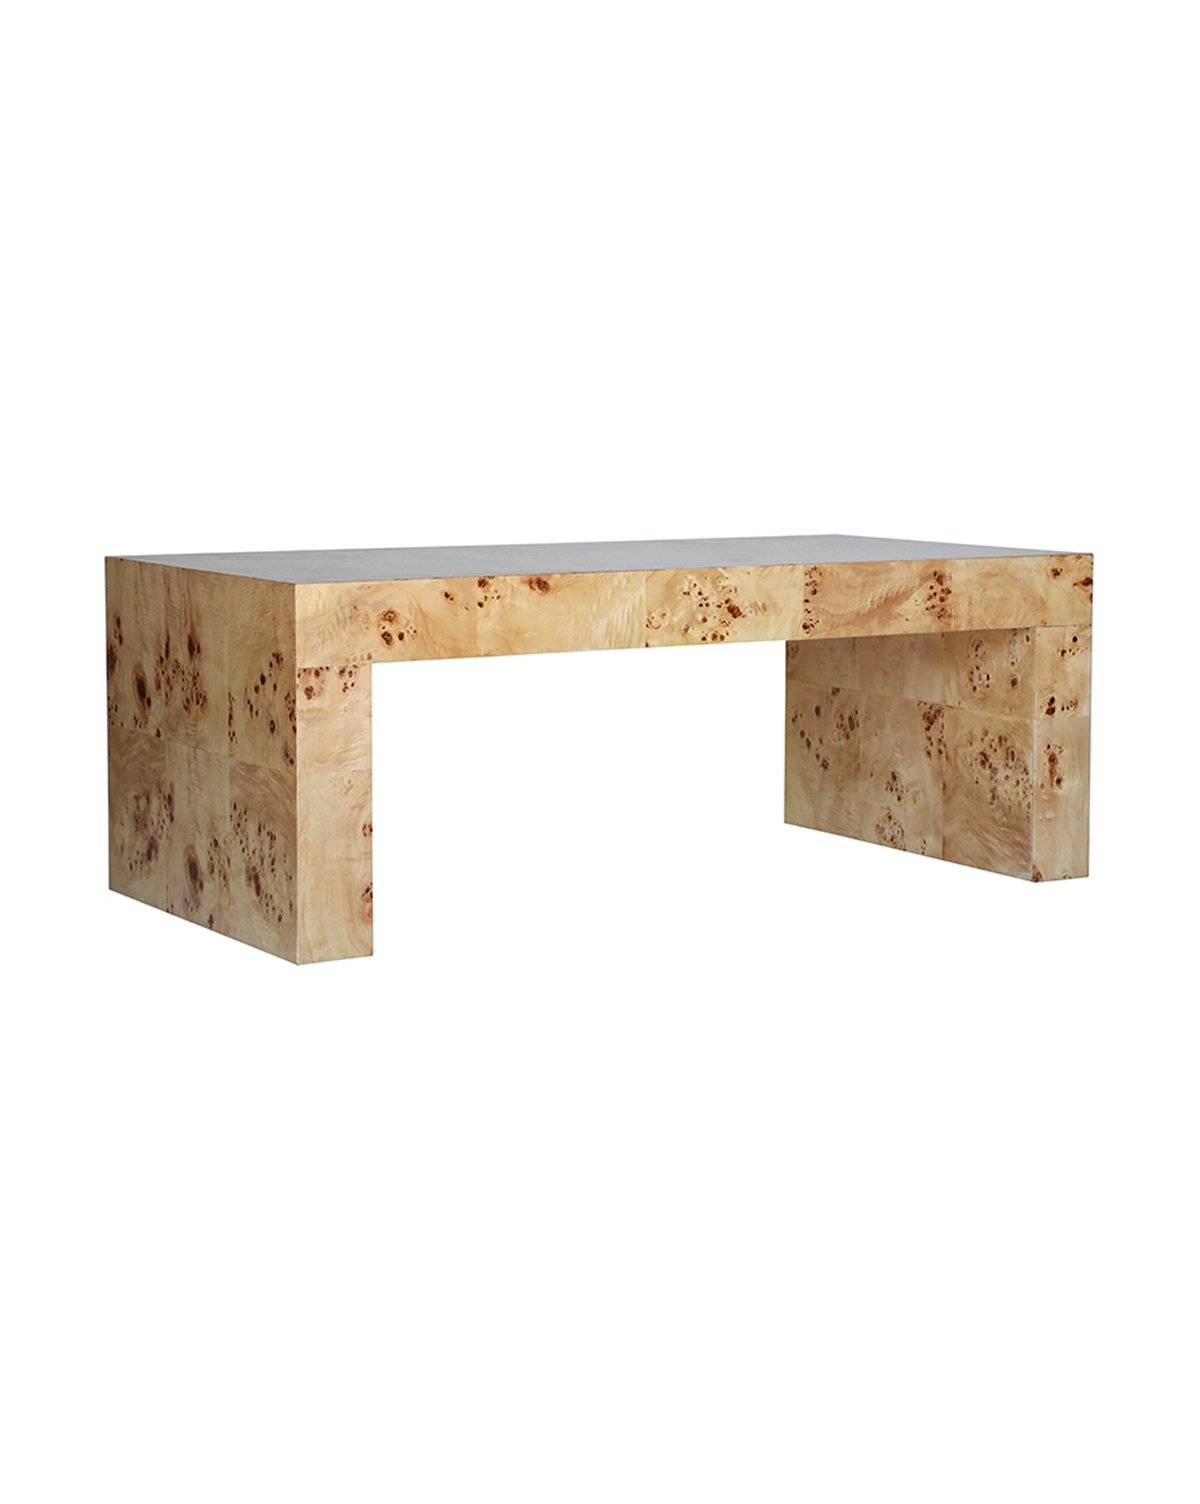 Chloe_Burl_Coffee_Table_2.jpg